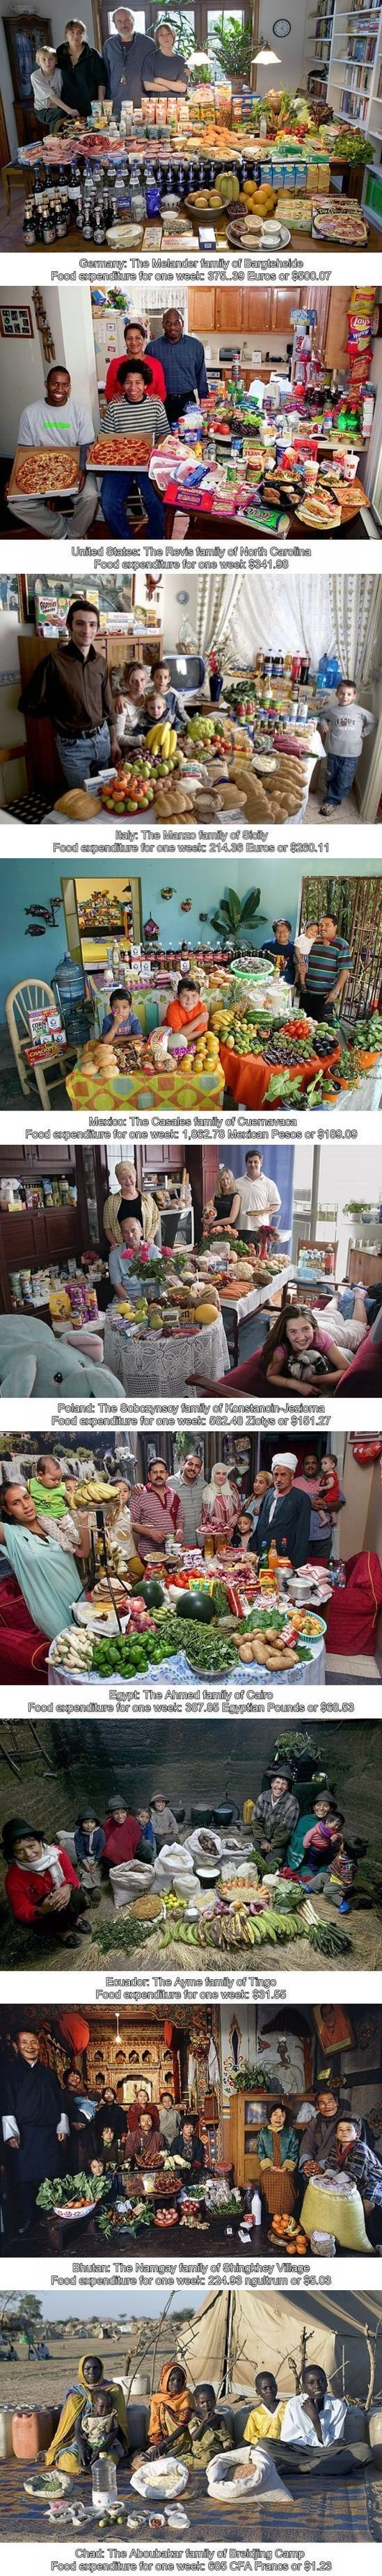 Ever wonder how much the average family consumes weekly? How about from different countries? (Photo-Essay)